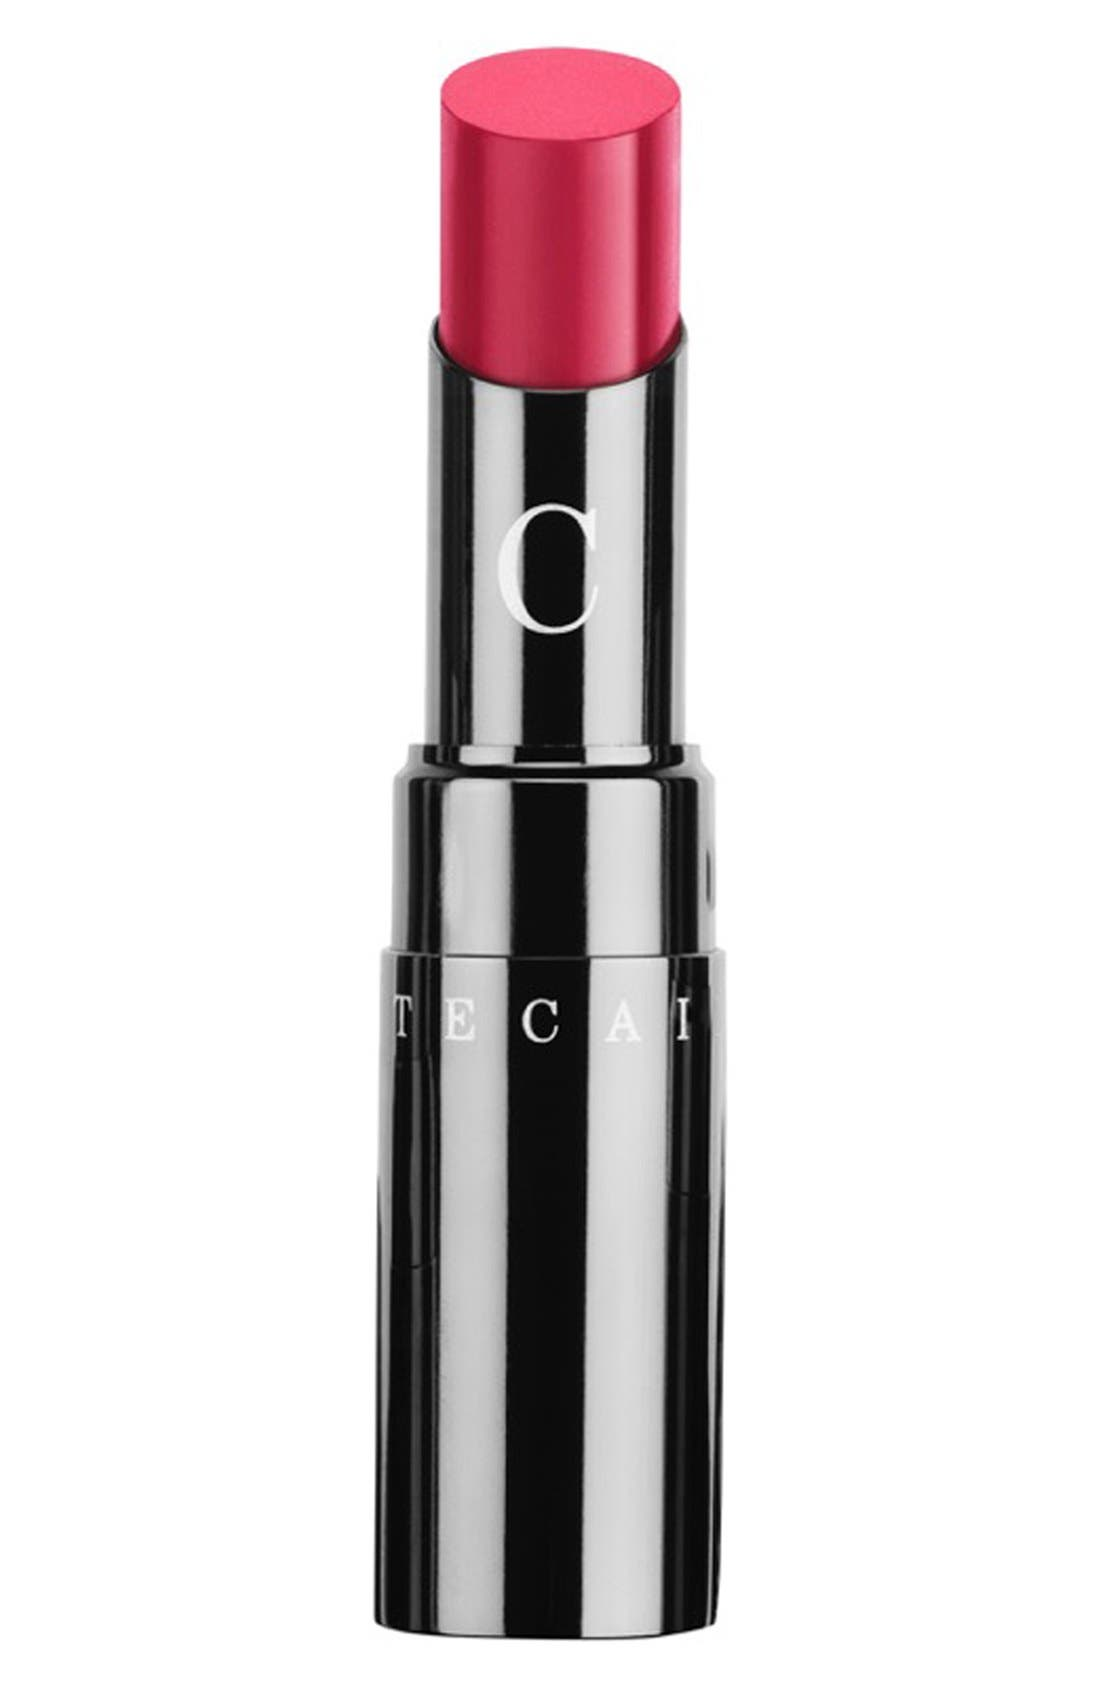 Chantecaille Lip Chic Lip Color